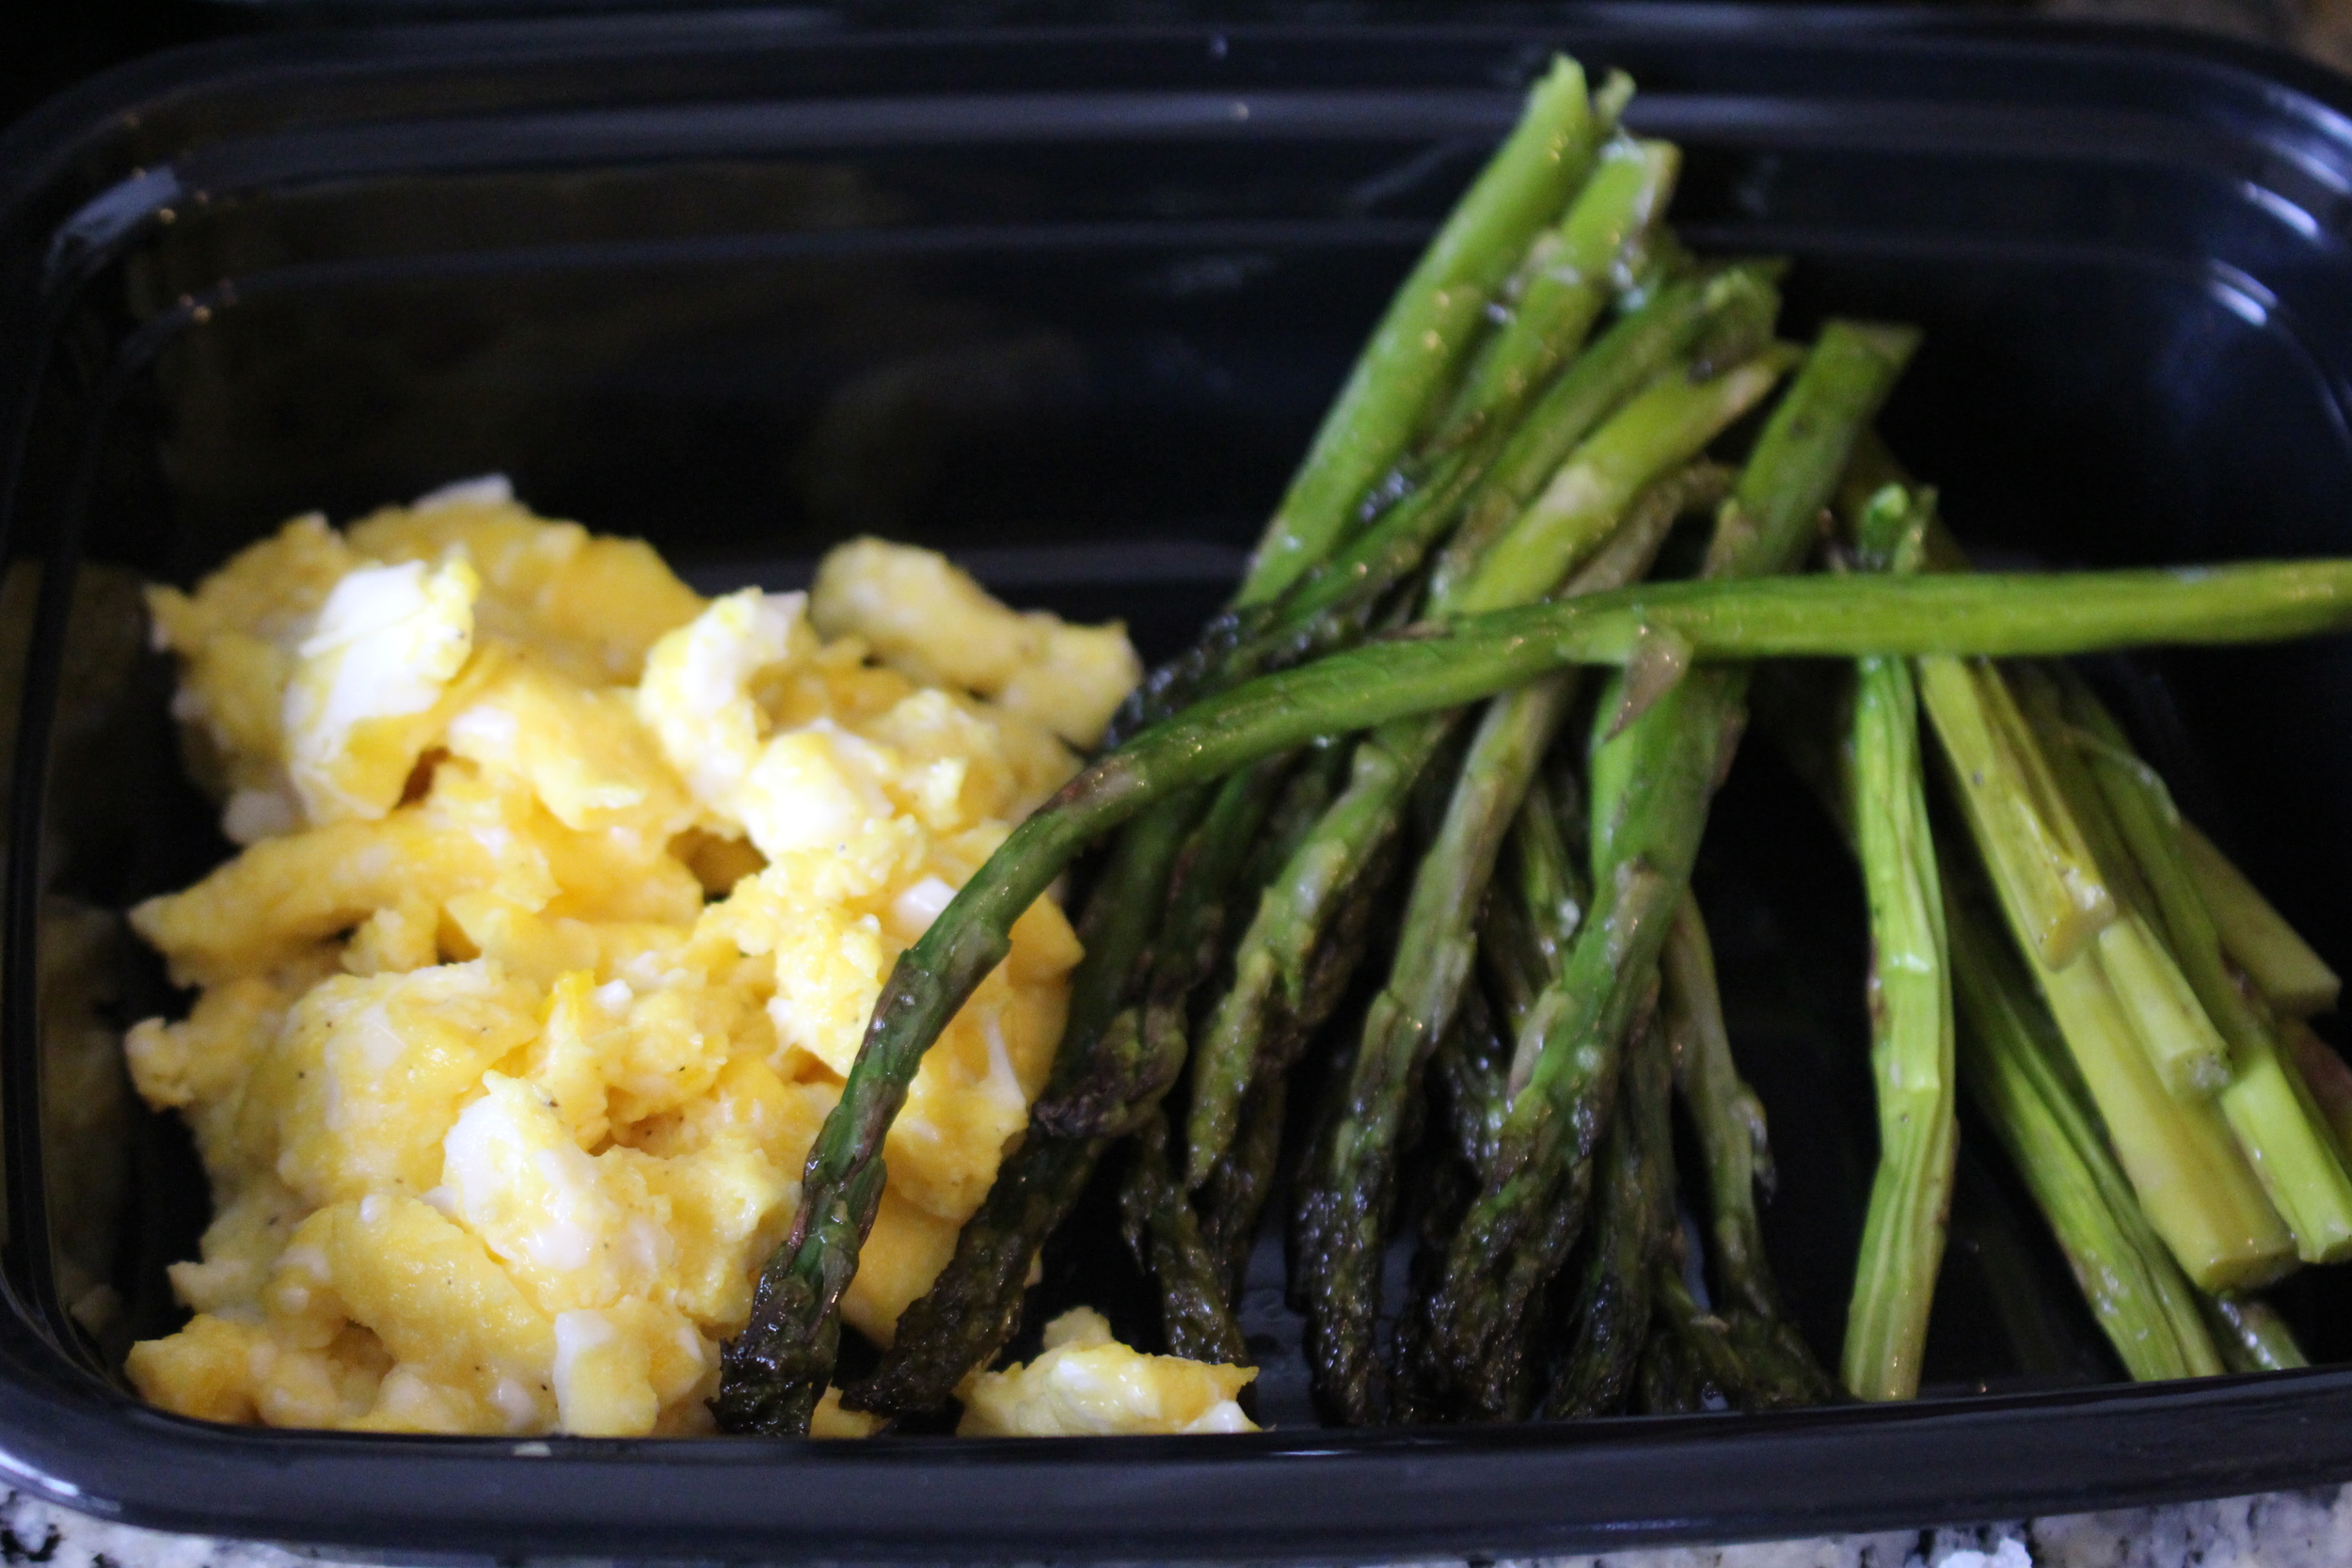 Breakfast: Eggs and Asparagus!